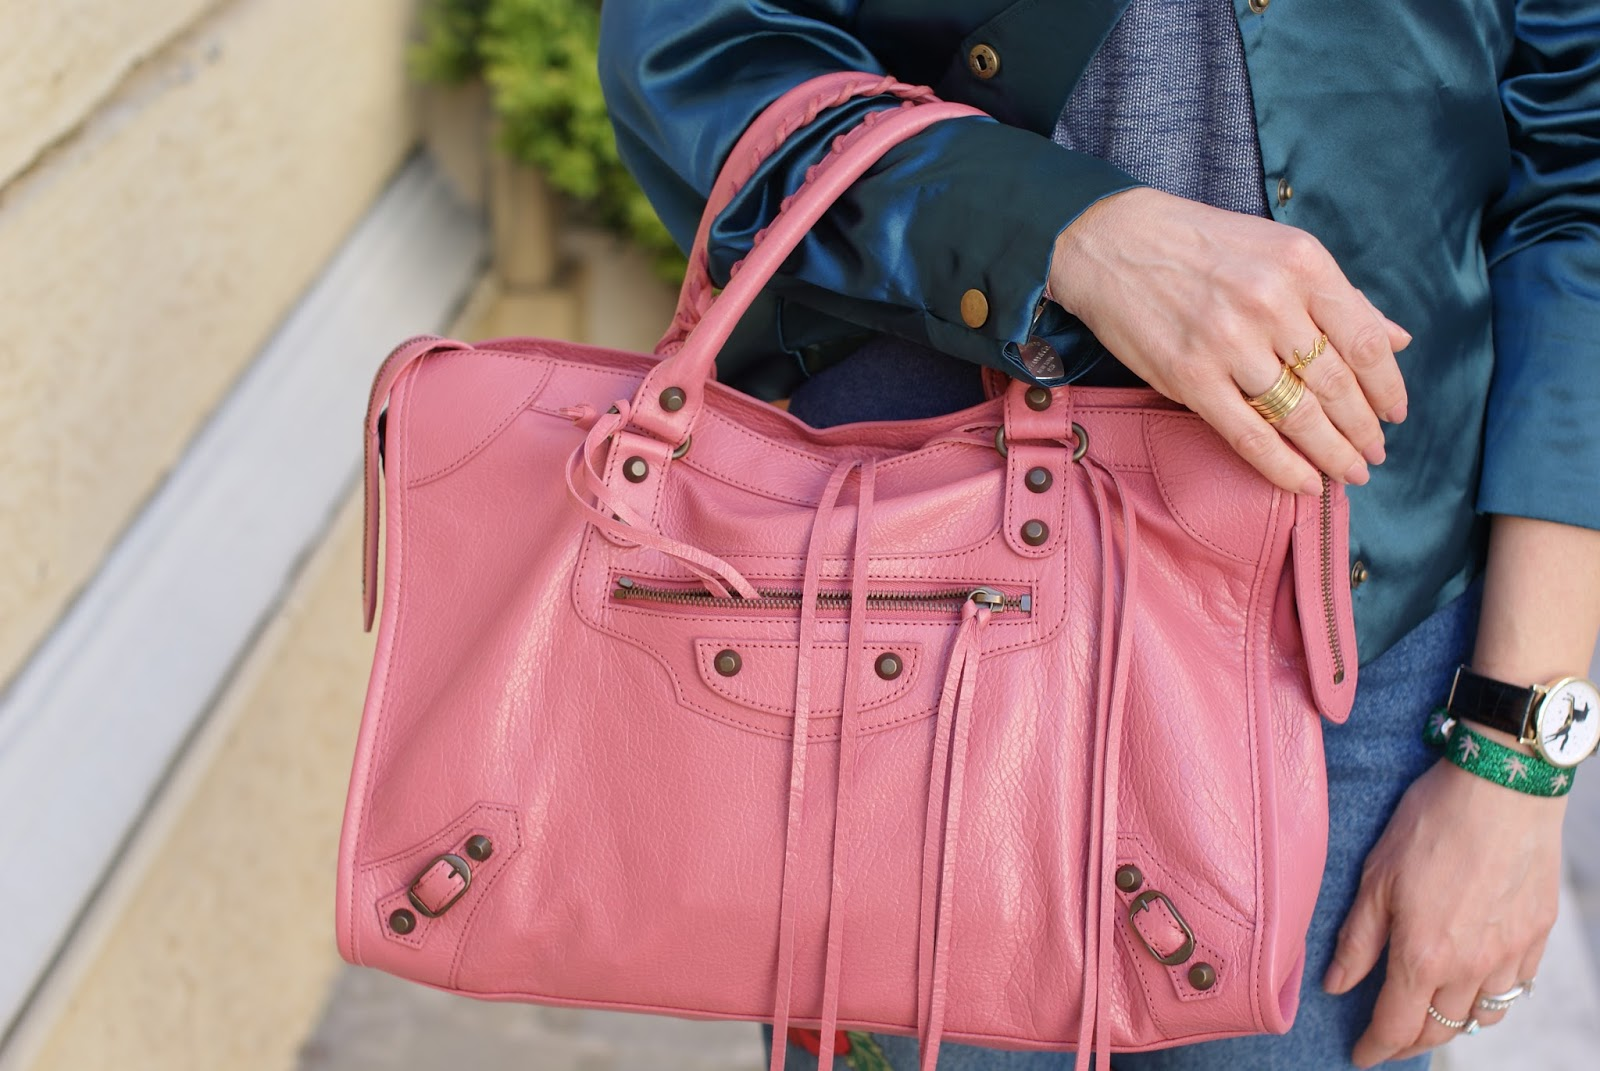 Balenciaga City pink bag on Fashion and Cookies fashion blog, fashion blogger style